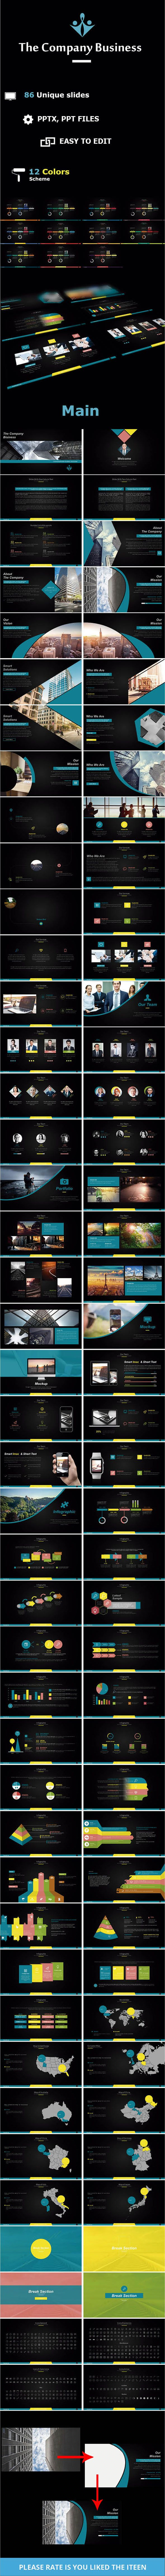 The Company Business Powerpoint - #PowerPoint Templates #Presentation Templates